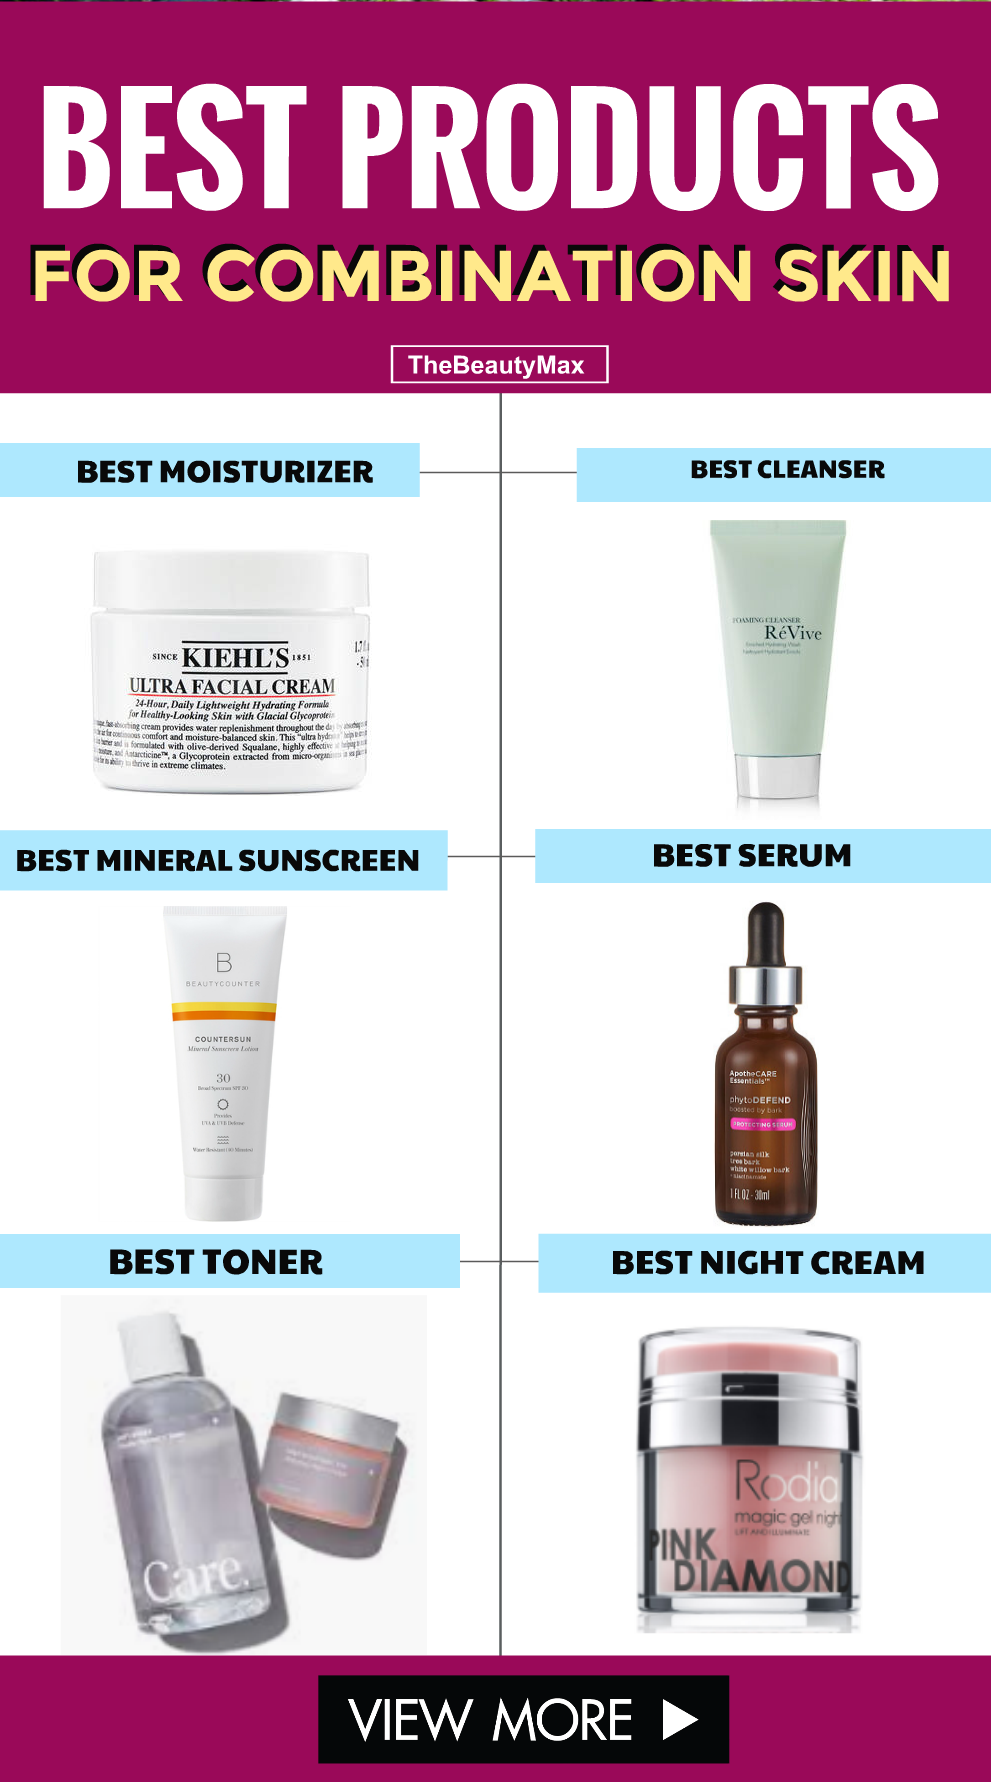 Best Products For Combination Skin Cleanser Toner Sunscreen Night Cream Etc Skin Cleanser Products Combination Skin Face Wash Anti Aging Skin Products